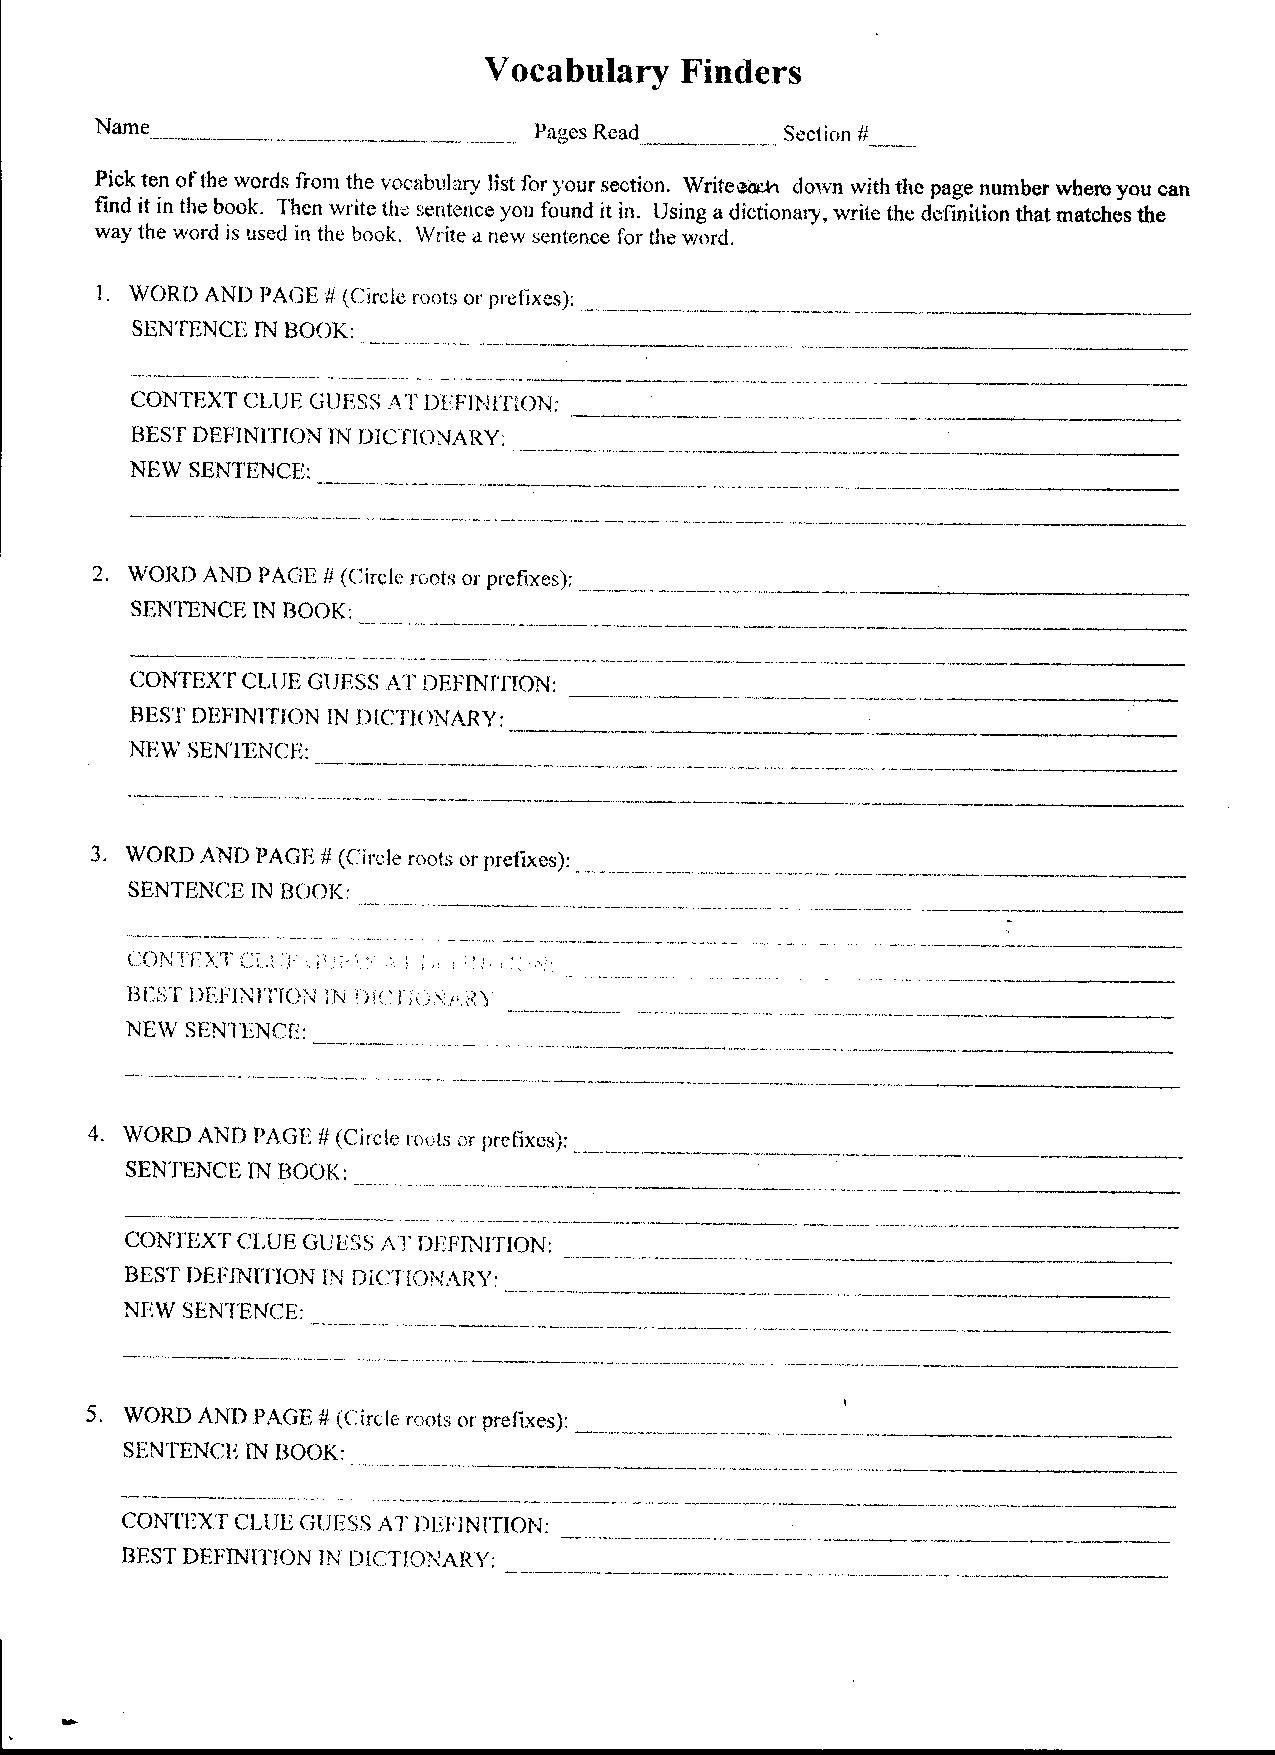 The Giver Vocabulary Worksheets Answers The Best Worksheets Image For The Giver Worksheets Pdf